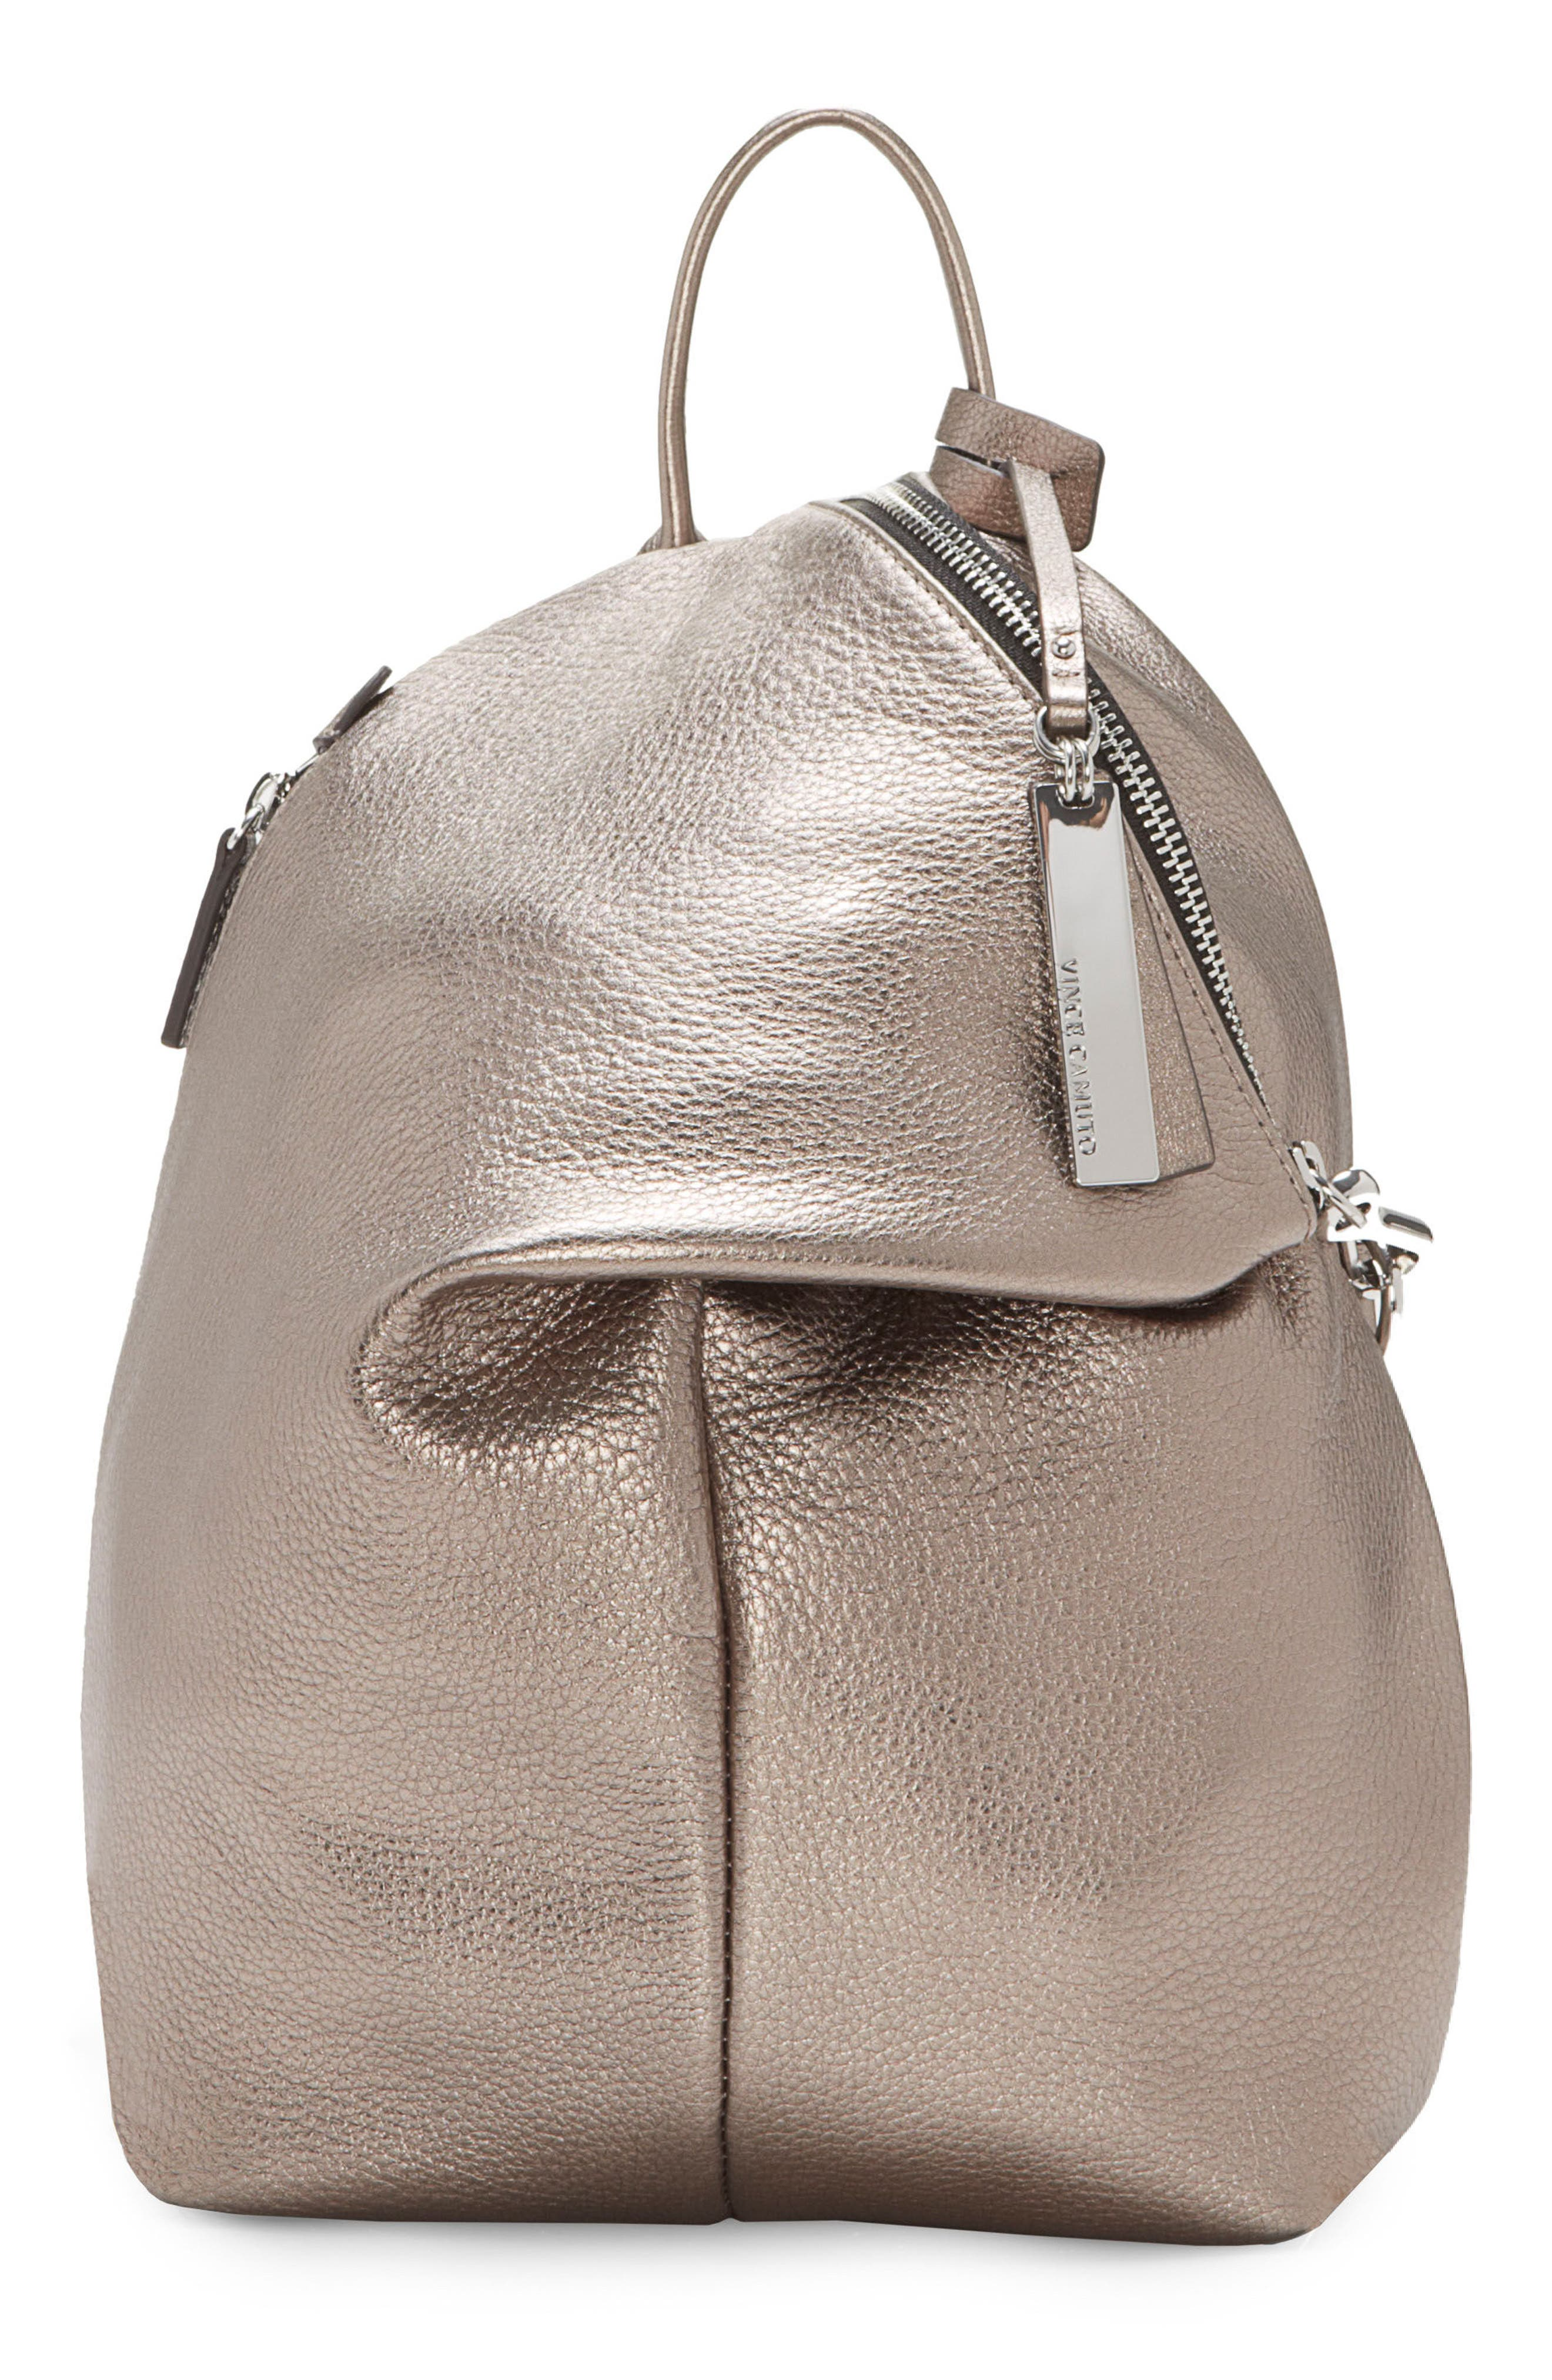 Alternate Image 1 Selected - Vince Camuto Small Giani Leather Backpack